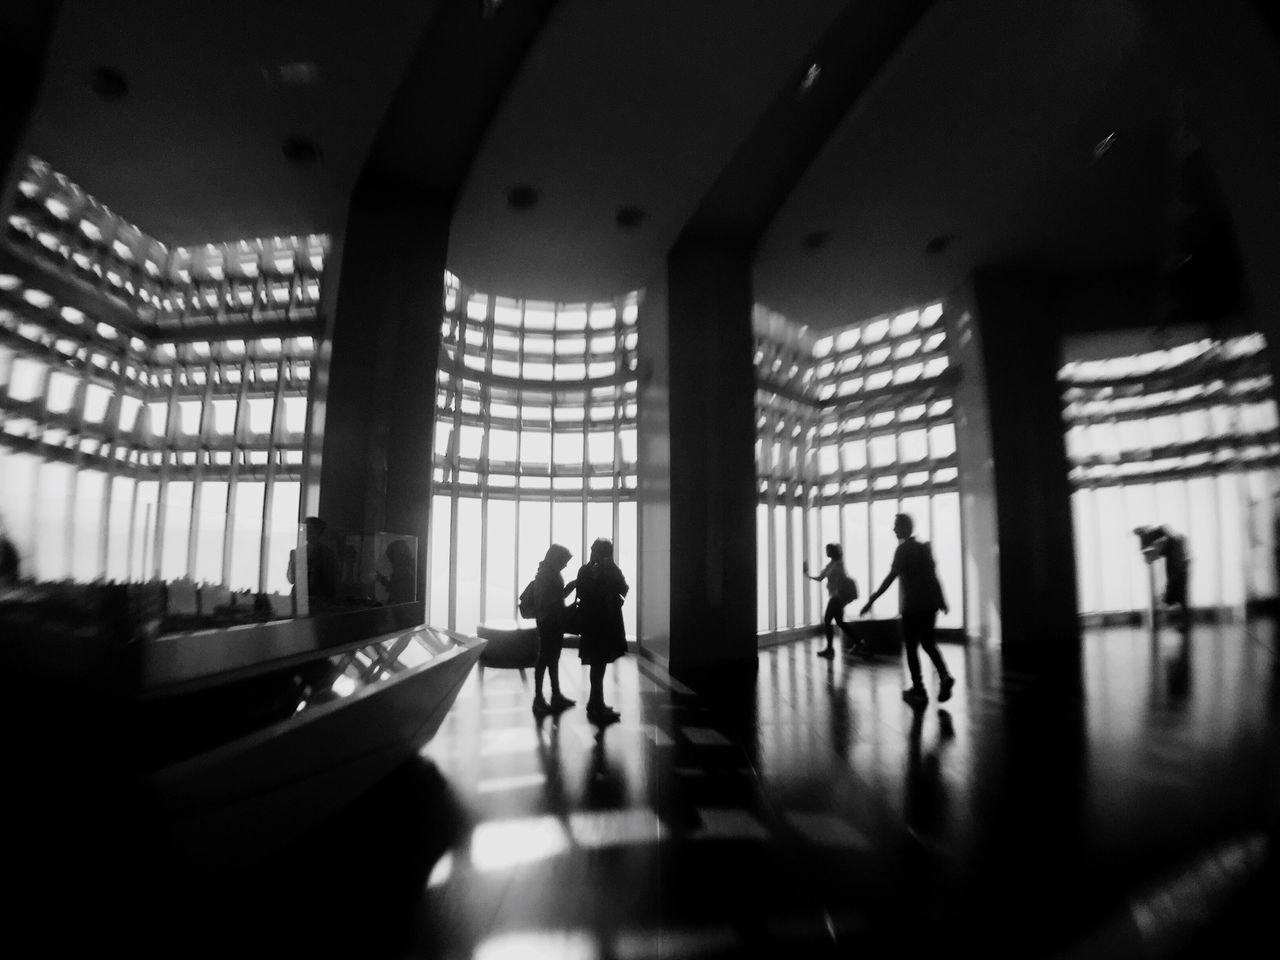 People inside a modern building Indoors  Real People Walking Architecture Museum Built Structure Lifestyles Men Women Day Full Length People Blackandwhite Busy People Working The Street Photographer - 2017 EyeEm Awards The Photojournalist - 2017 EyeEm Awards EyeEmNewHere